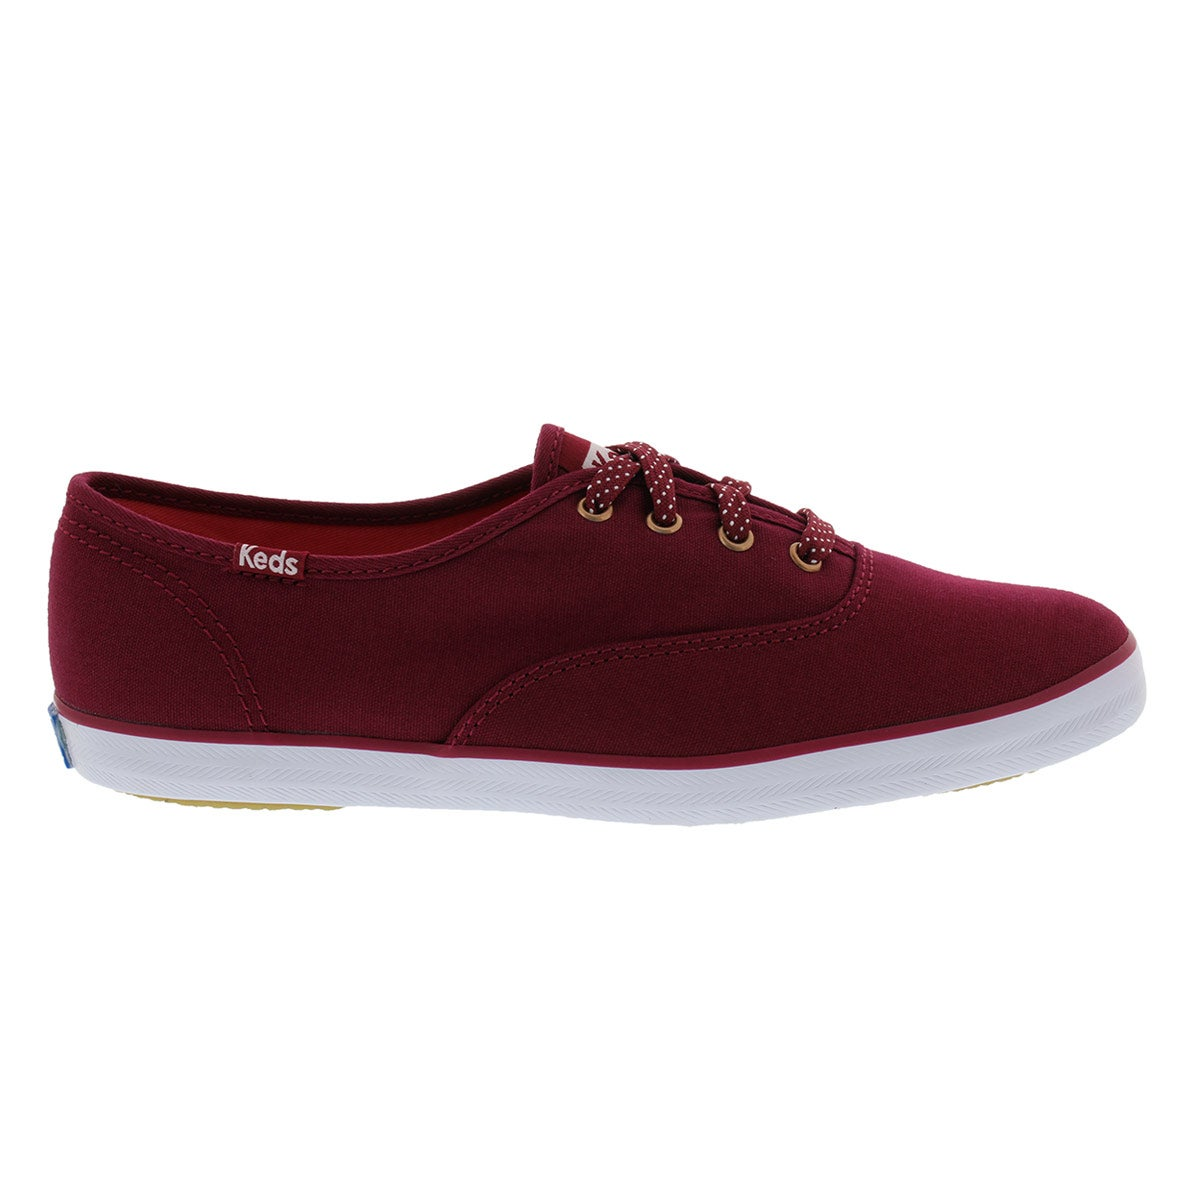 Lds Champion Solid red canvas sneaker